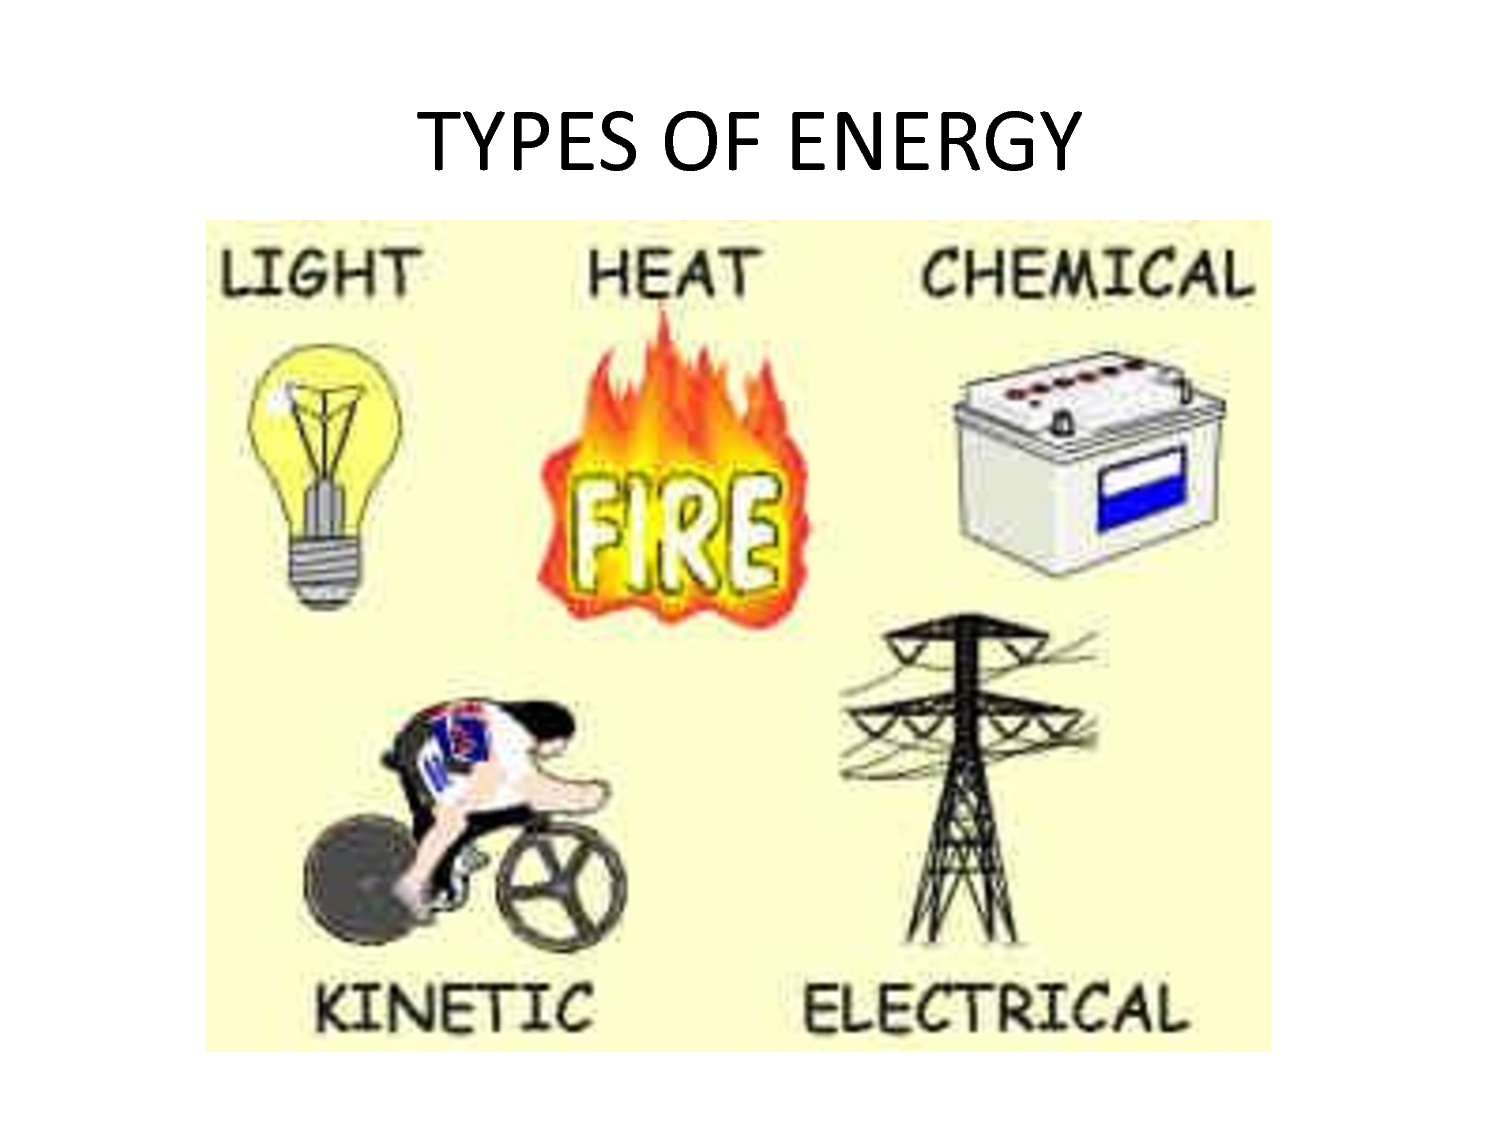 Essential Knowledge 2A1 All Living Systems Require Constant Input Of Free Energy